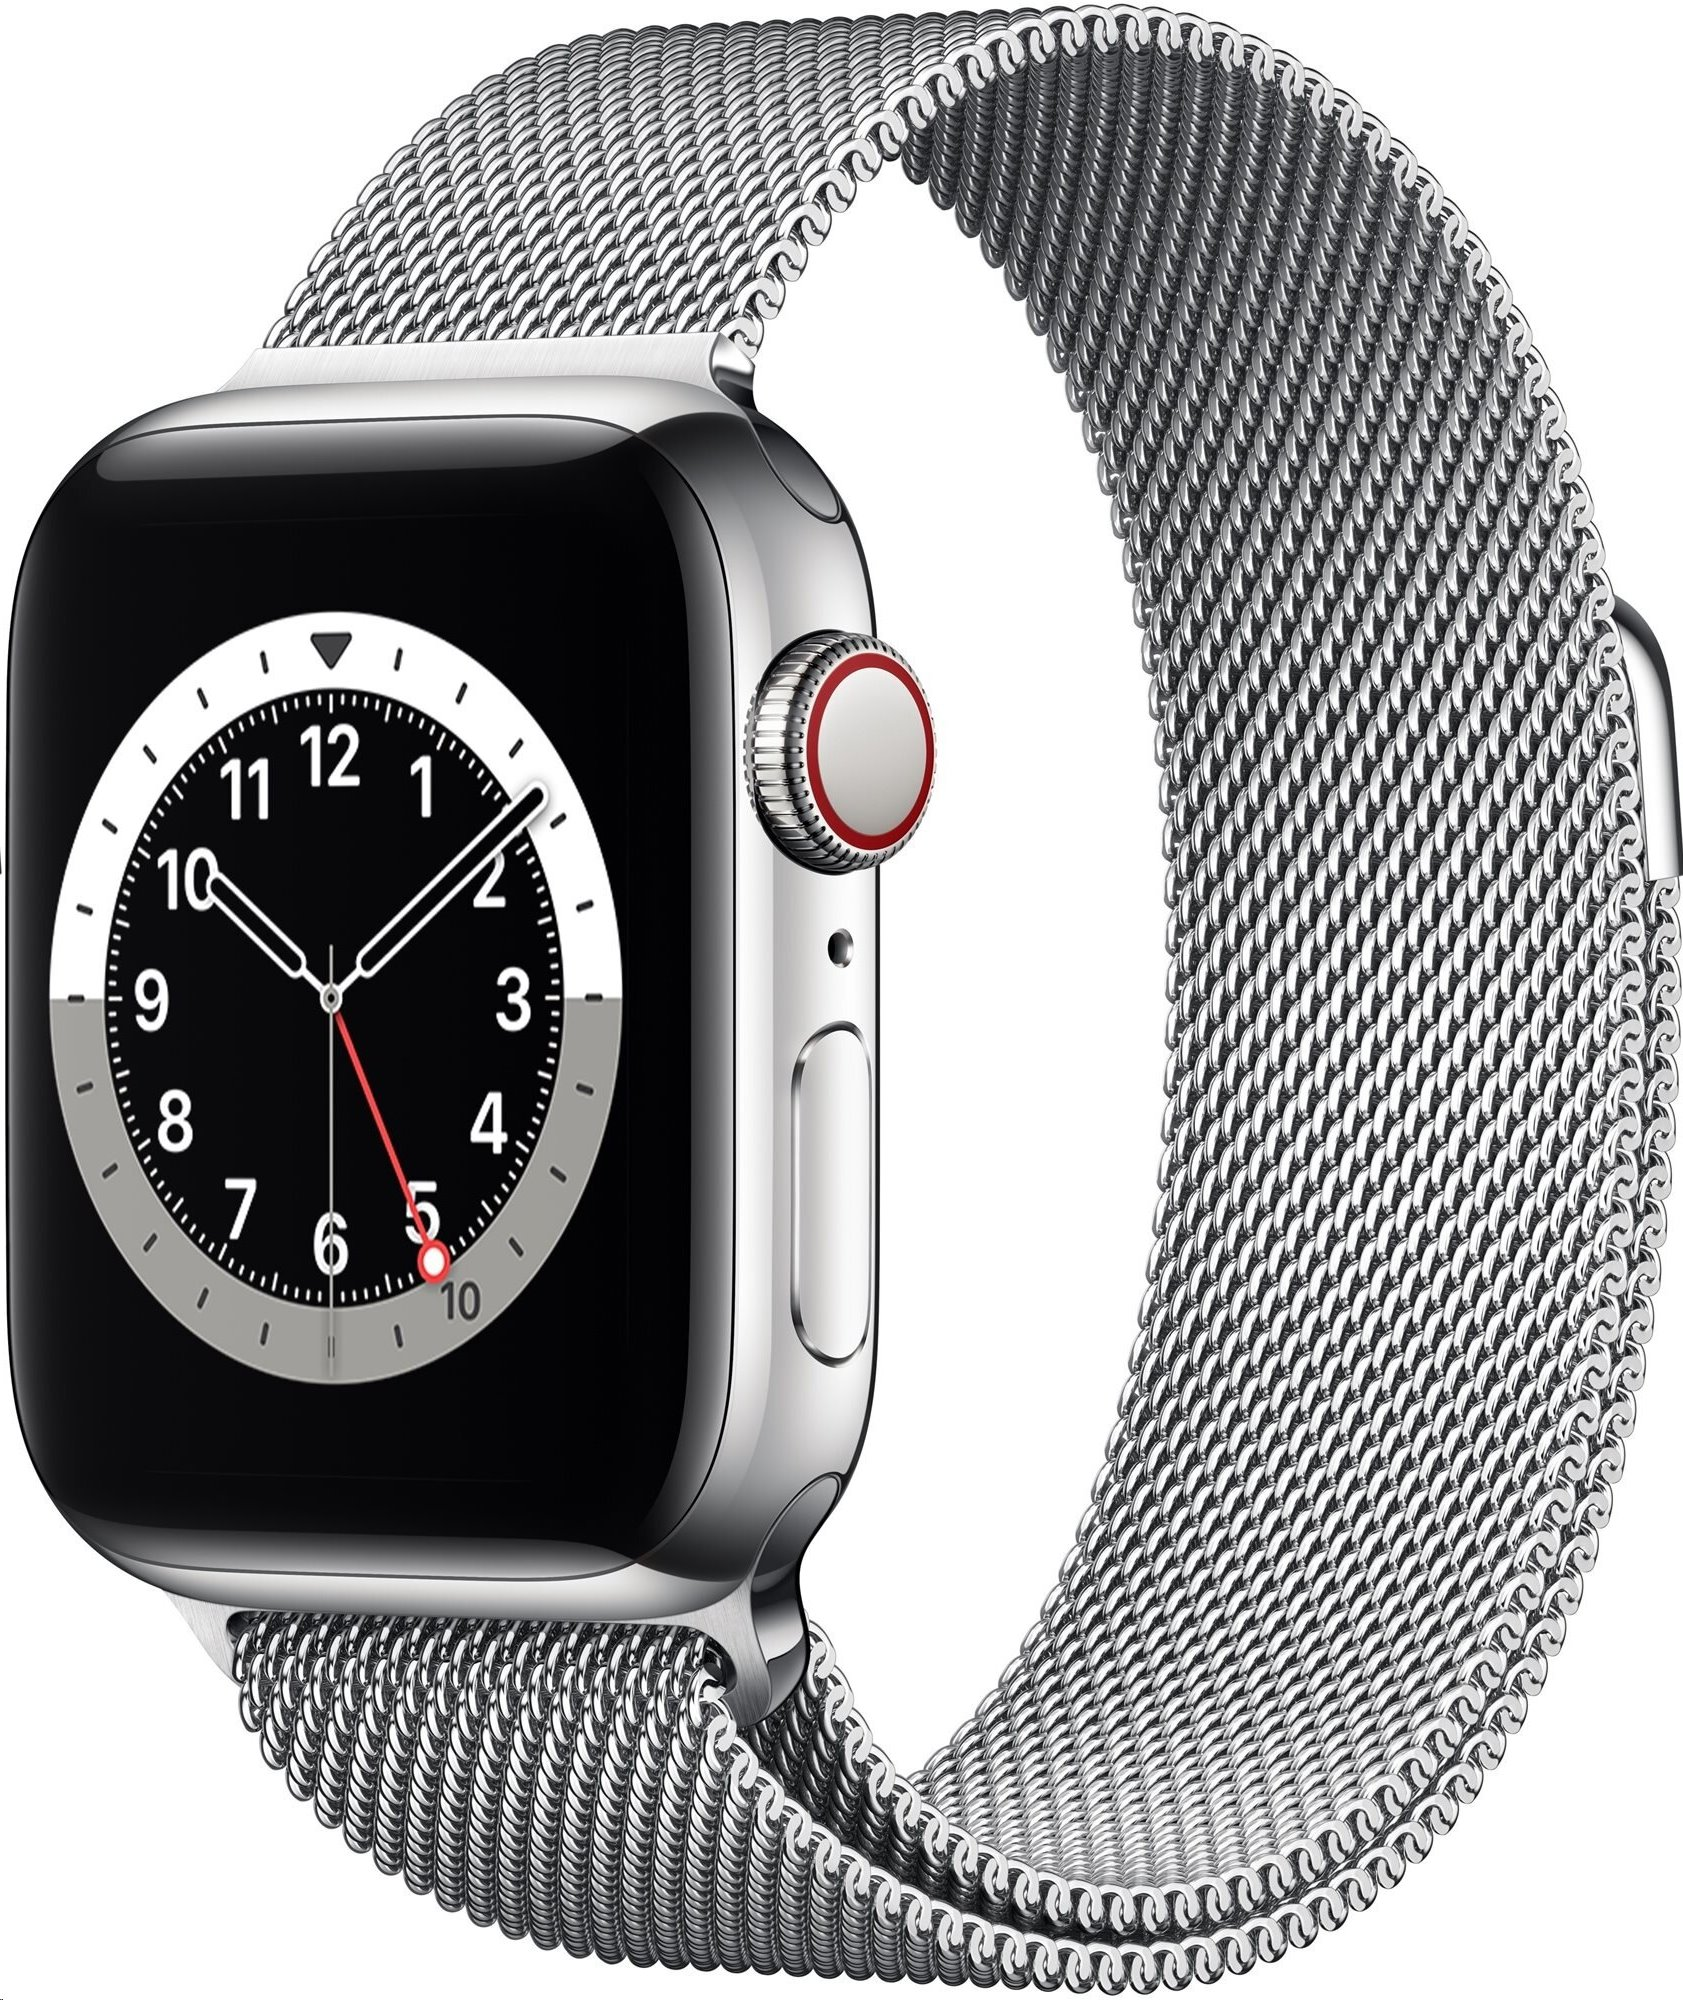 APPLE Watch Series 6 GPS+Cellular,40mm Silver Stainless Steel Case with Silver Milanese Loop